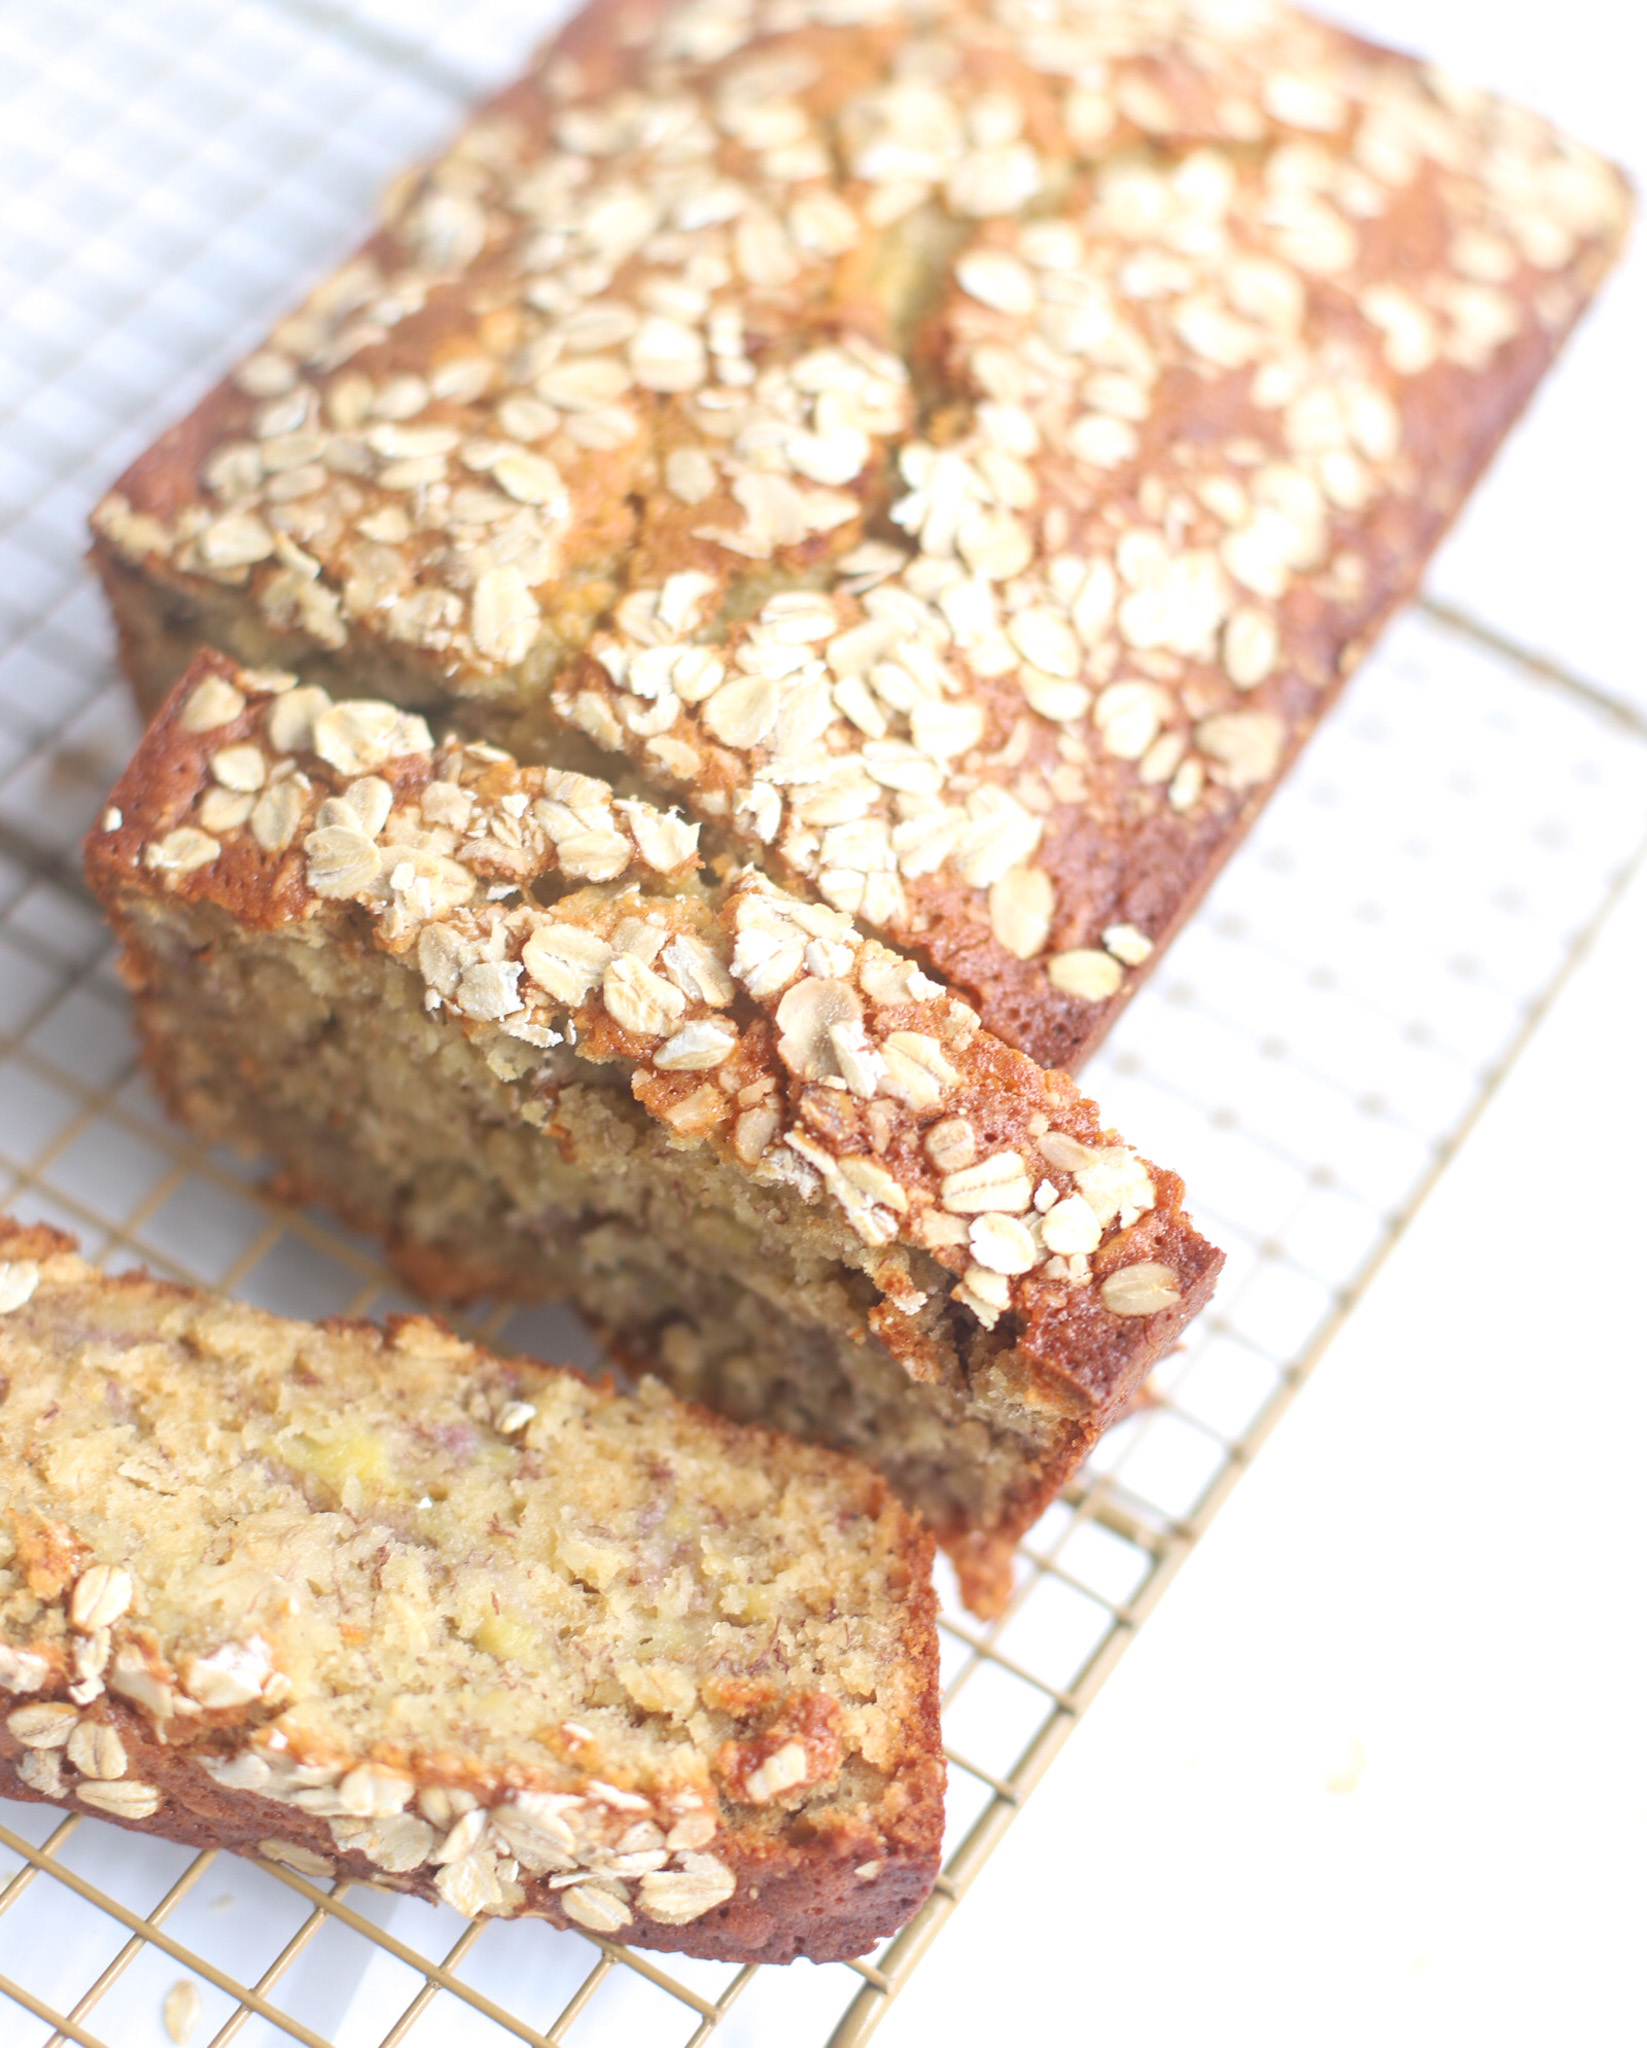 Oatmeal banana bread is the most amazing twist on a more classic banana quick bread. Filled with oats and yogurt, the recipe results in a delicious banana bread that is fluffy, moist, and has the perfect chewy crust. Click through for the recipe. | glitterinc.com | @glitterinc